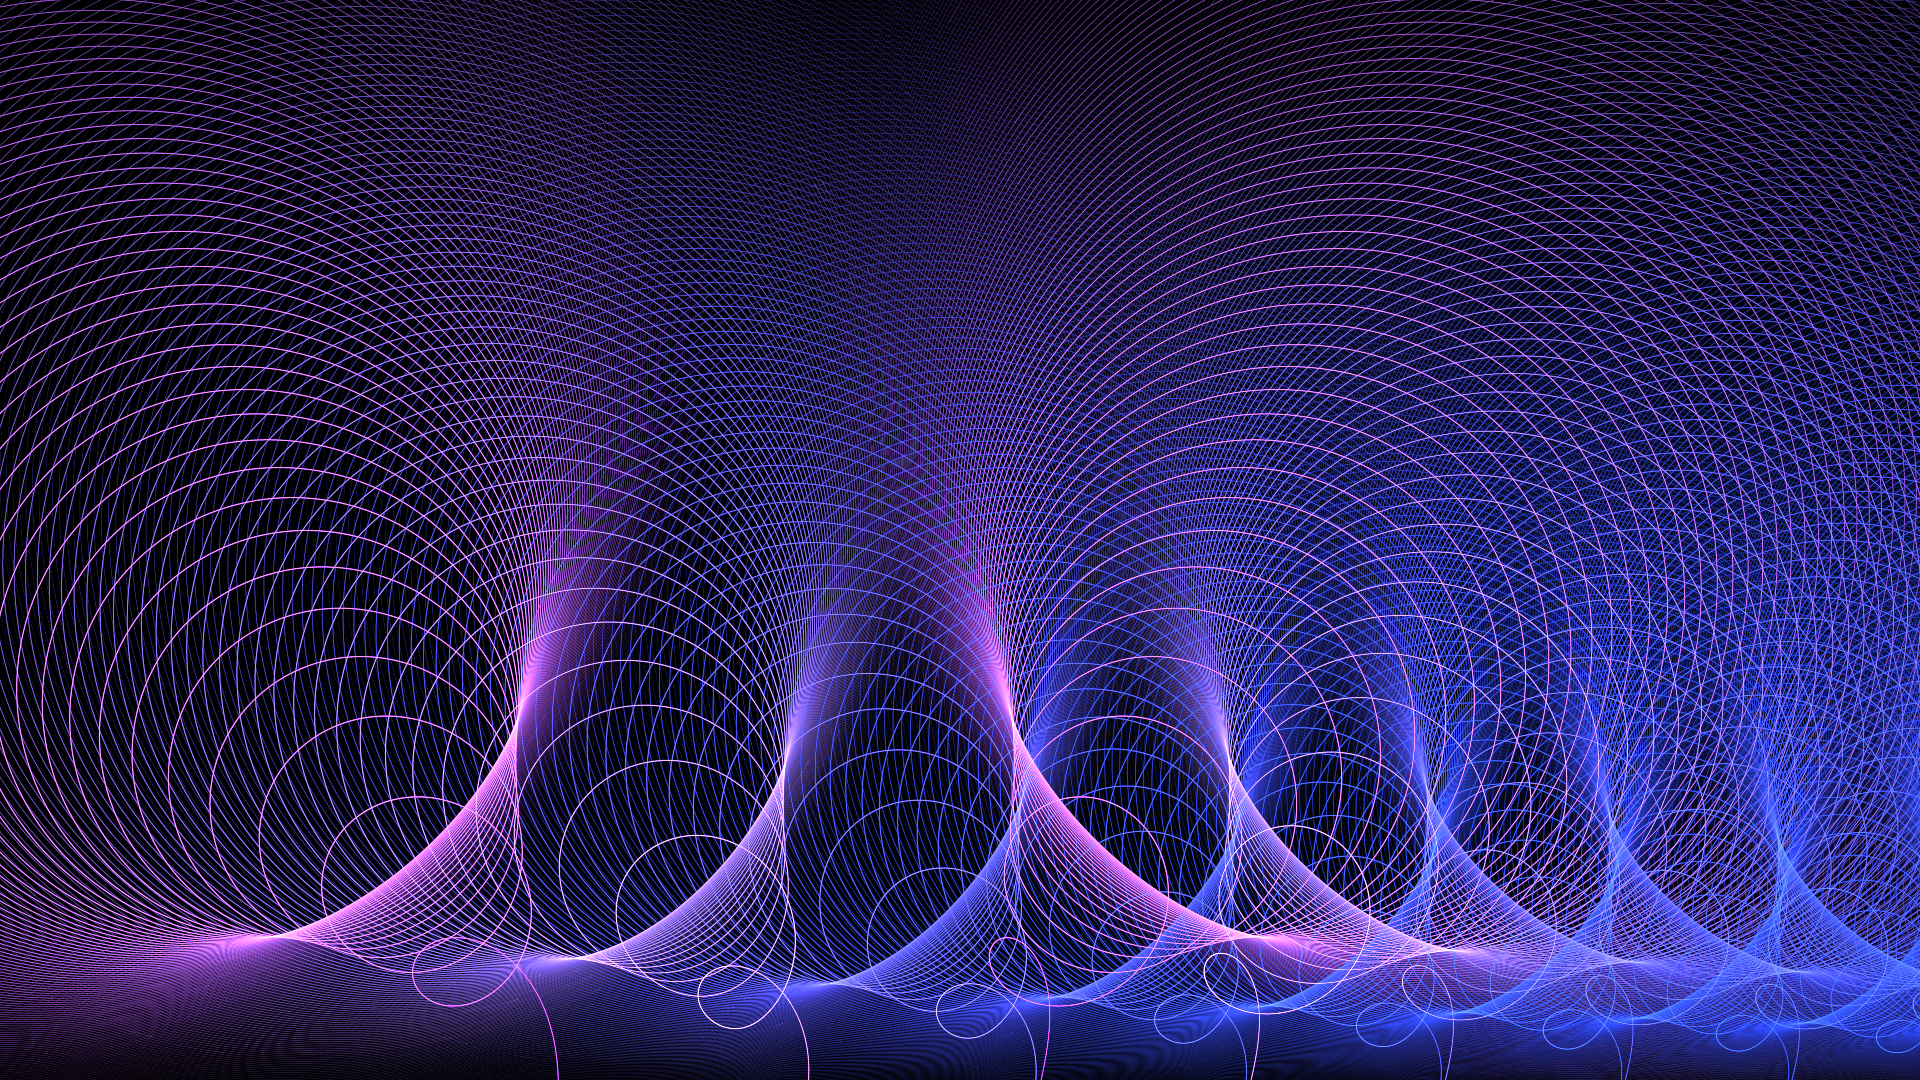 Abstract - Purple  Wave Artistic Fractal Science Energy Digital Art Abstract Wallpaper